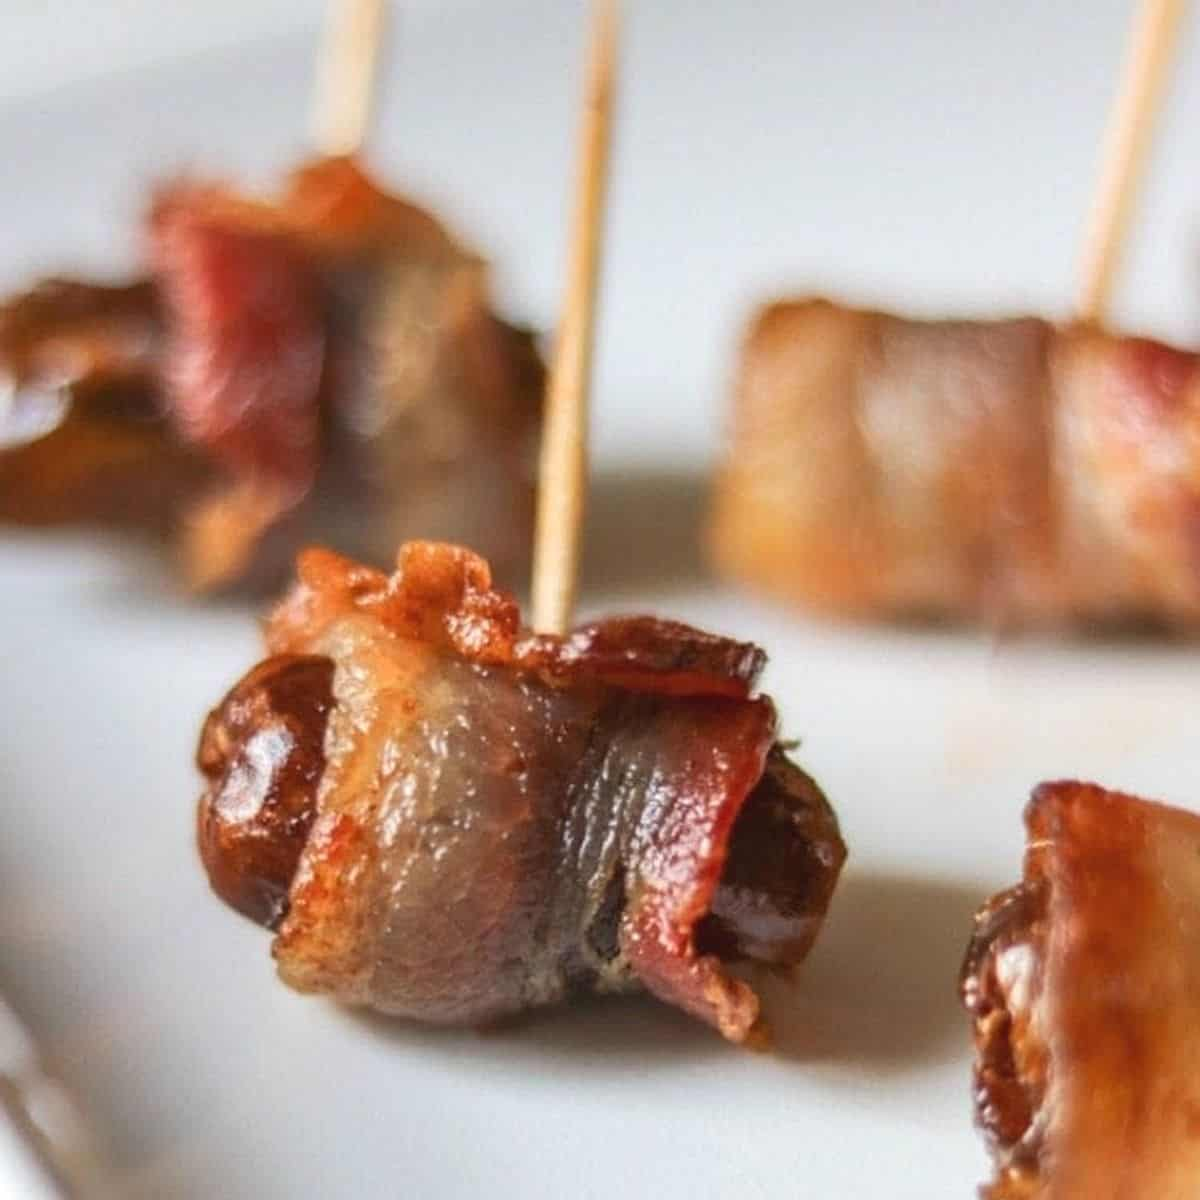 Close up of bacon wrapped date stuffed with almond on white baking tray.